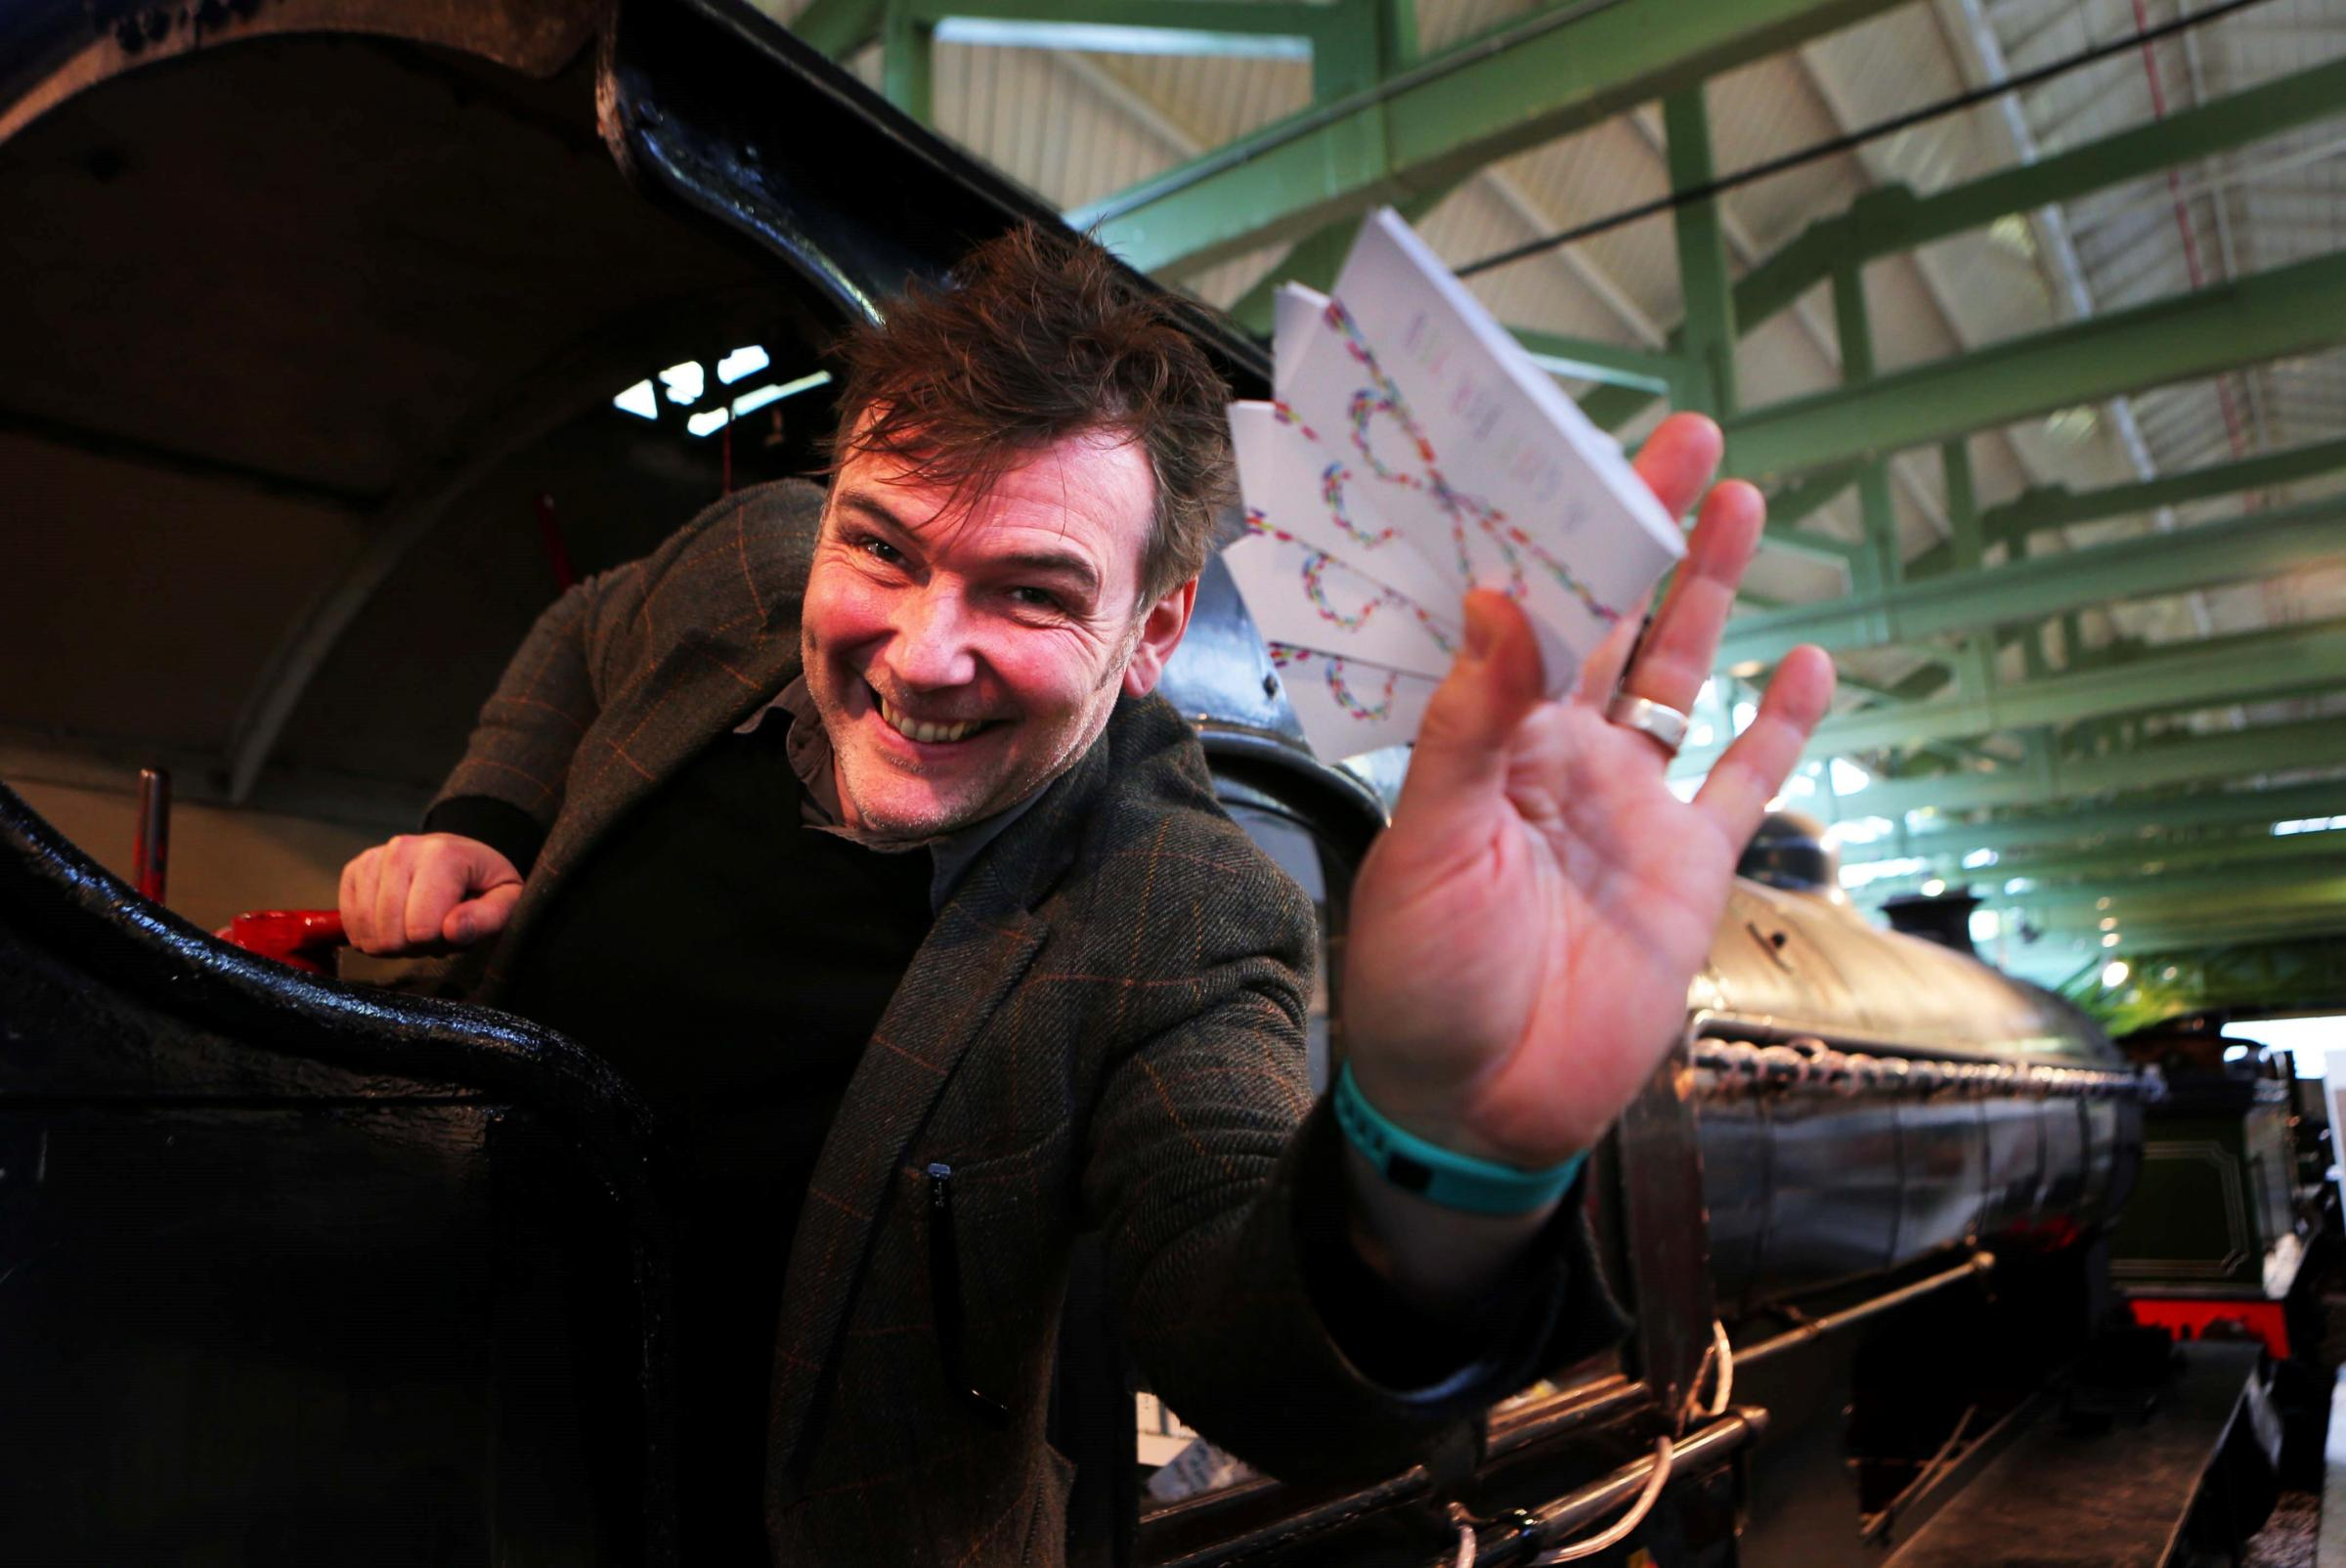 Hundreds have their say on the future of Darlington railway museum